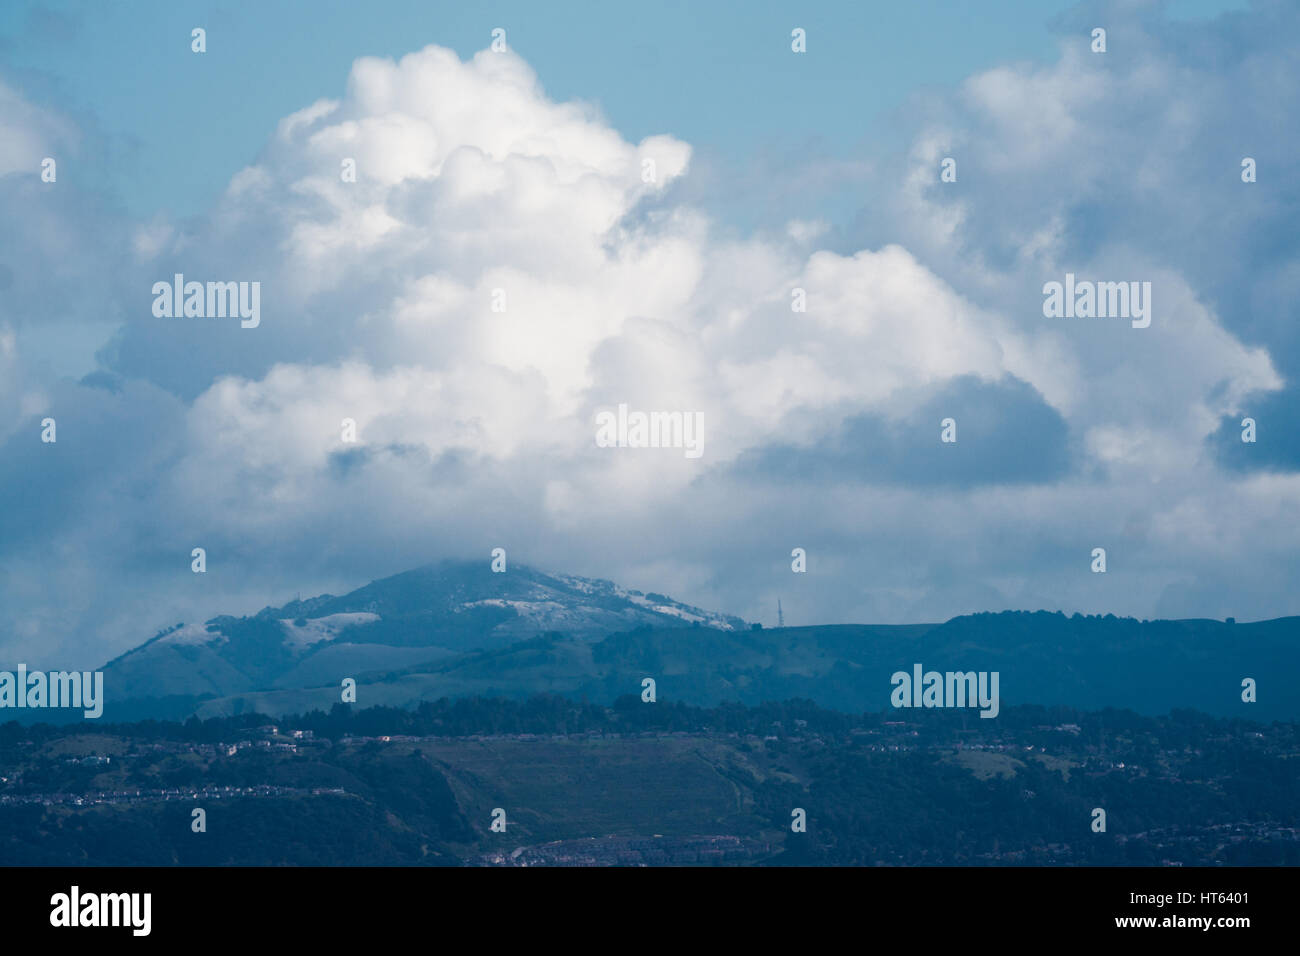 On very rare occasions the Bay Area can see snow when looking outside. Mt. Diablo received snow that quickly melted Stock Photo